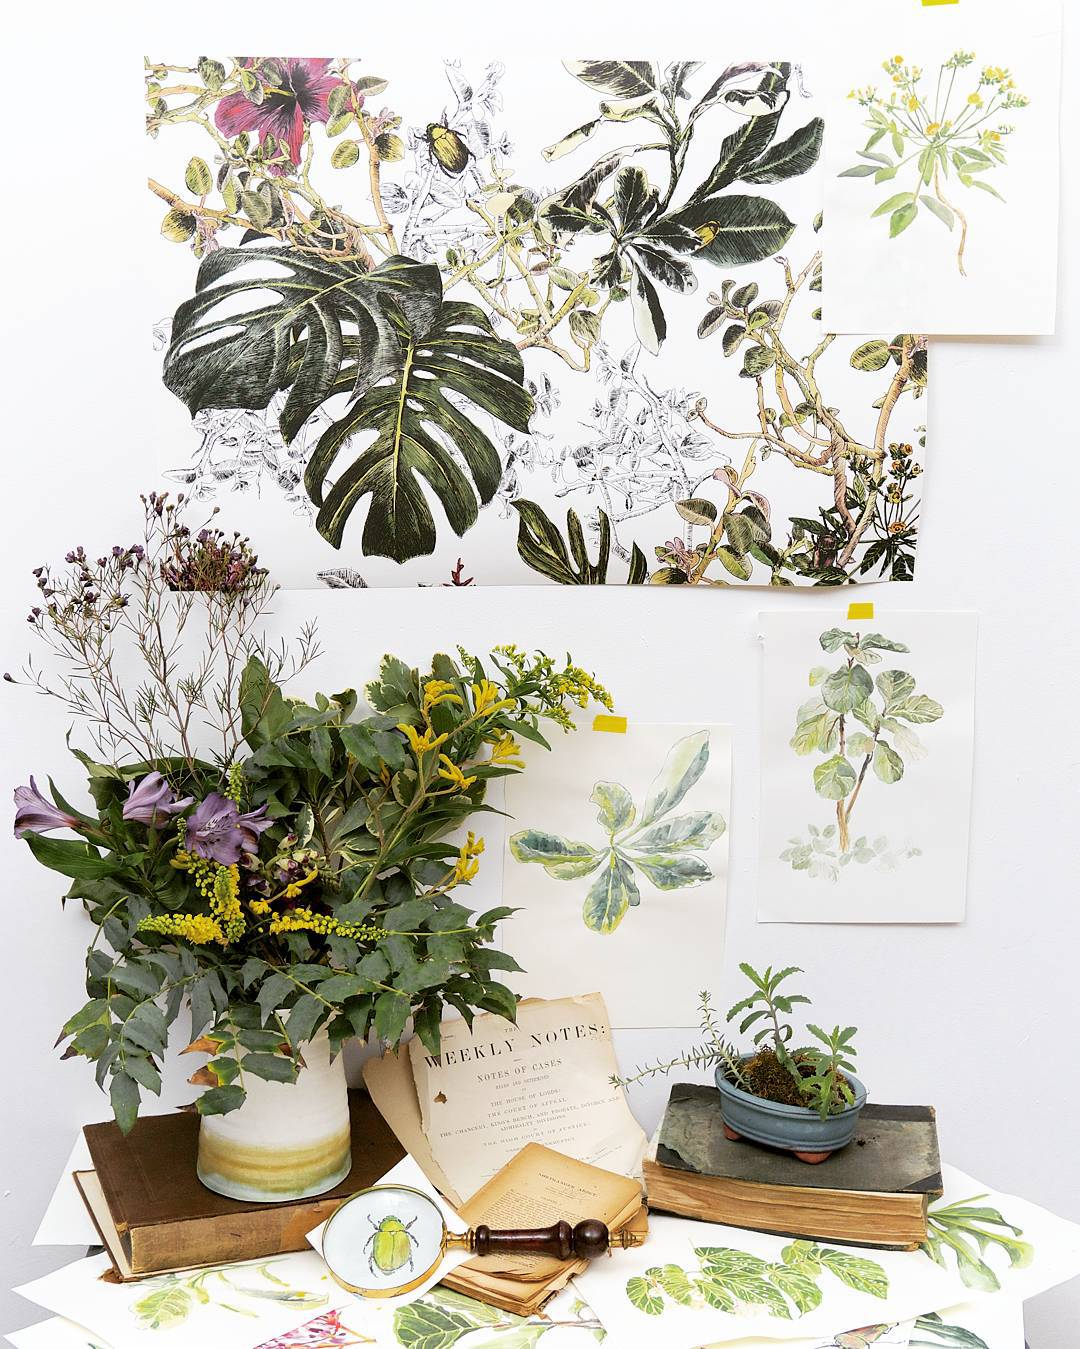 Sian Zeng's Wallflowers - The Planthunter Interview